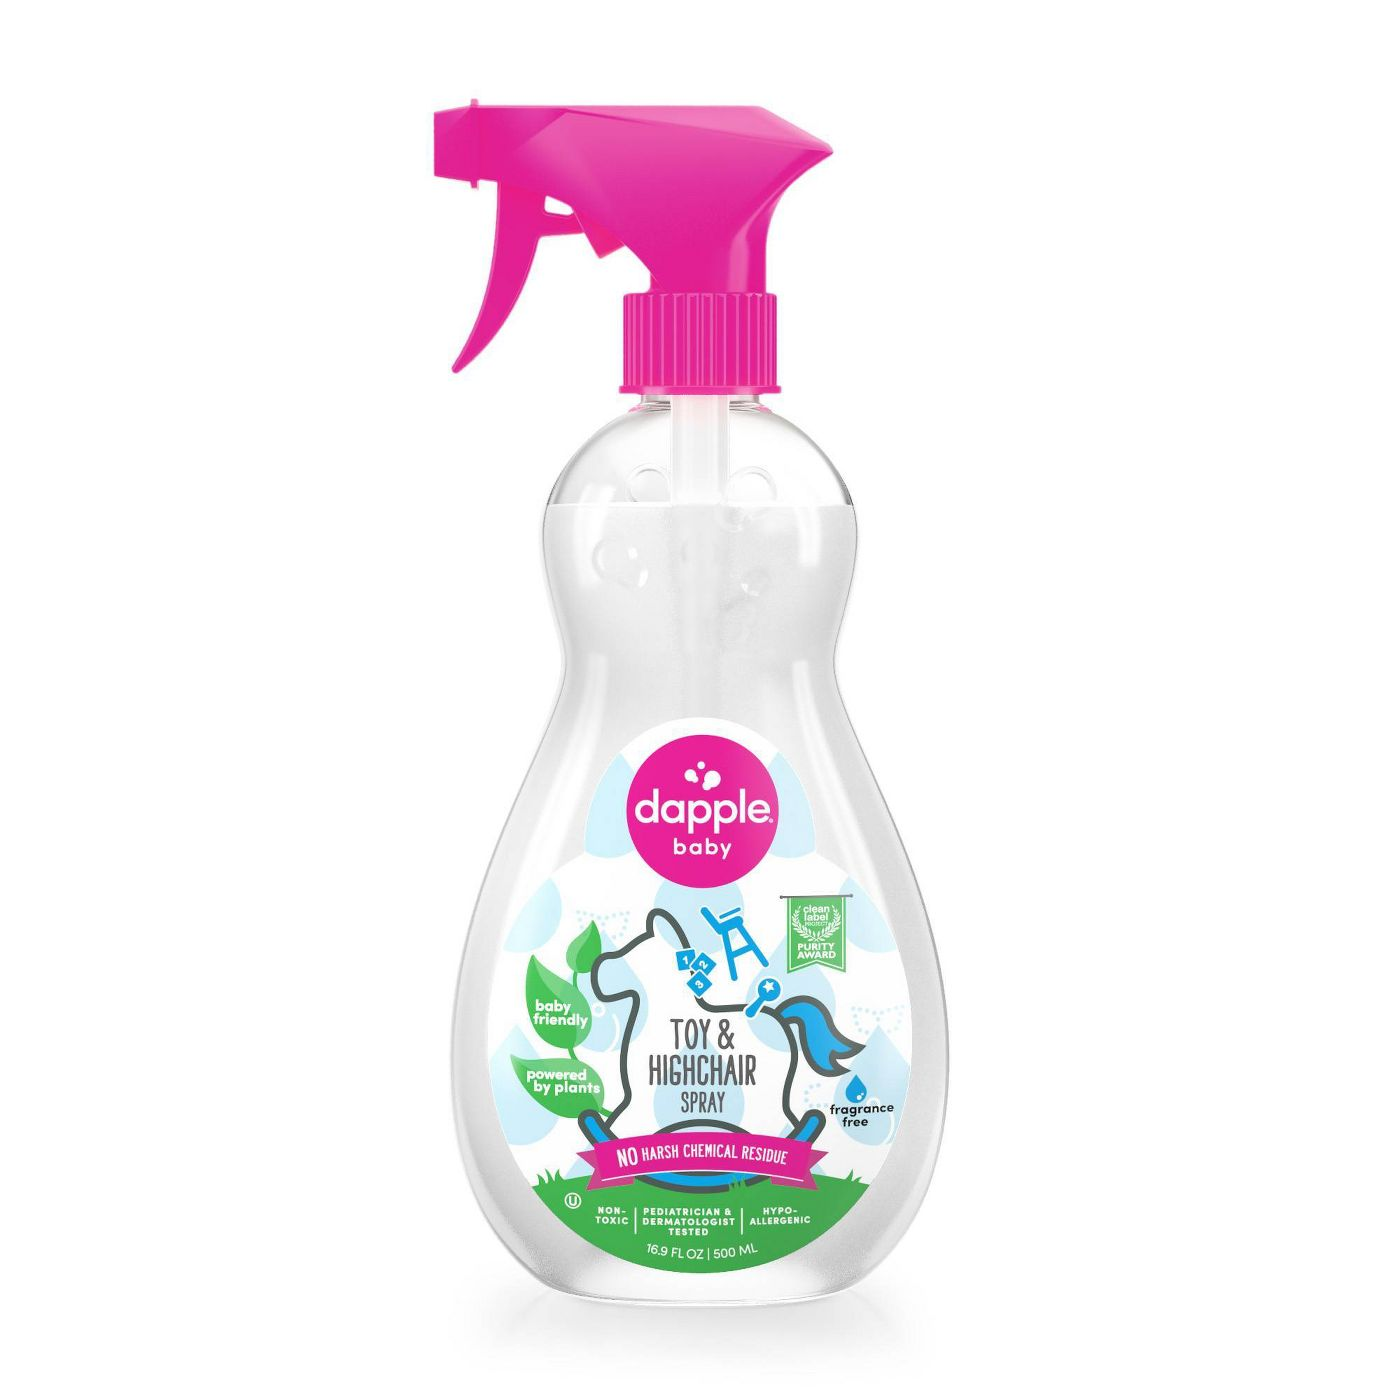 Dapple Baby Toy and High Chair Spray